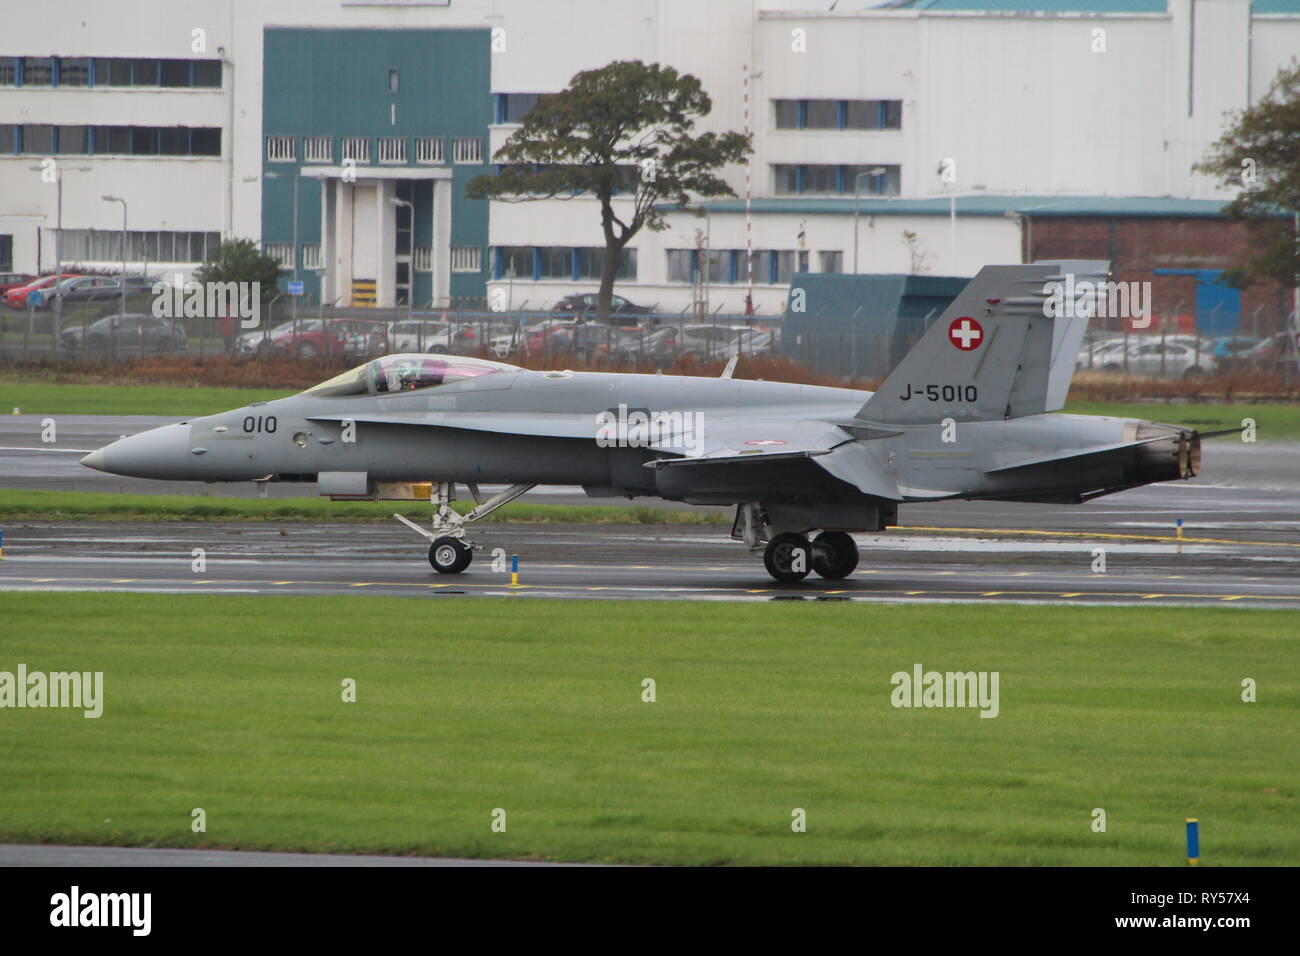 J-5010, a Boeing F/A-18C Hornet operated by the Swiss Air Force, at Prestwick International Airport in Ayrshire. - Stock Image